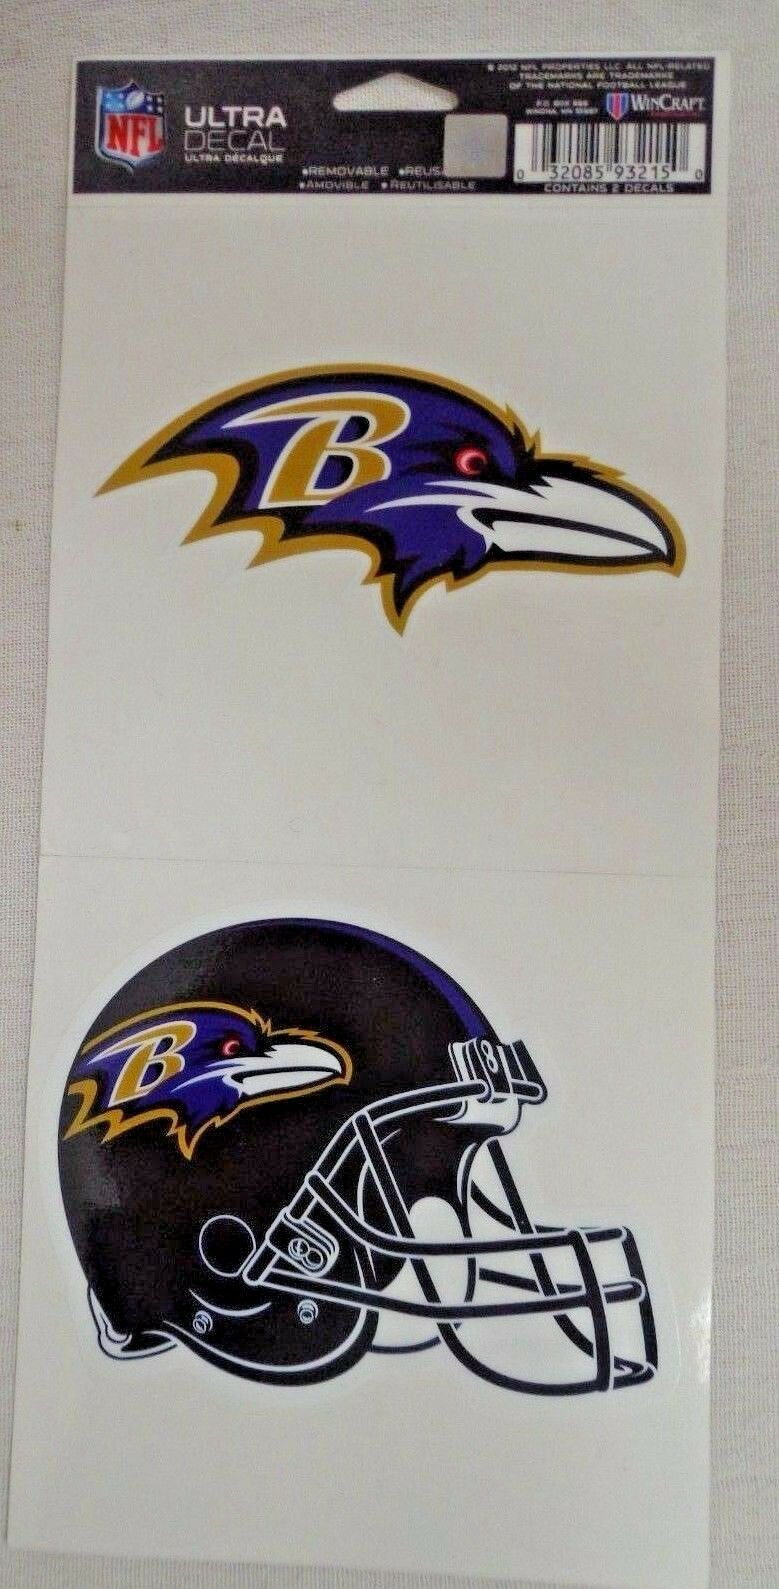 NFL Ultra Decals 2 Pack Set Removable Reusable Sticker Wincraft Baltimore Ravens